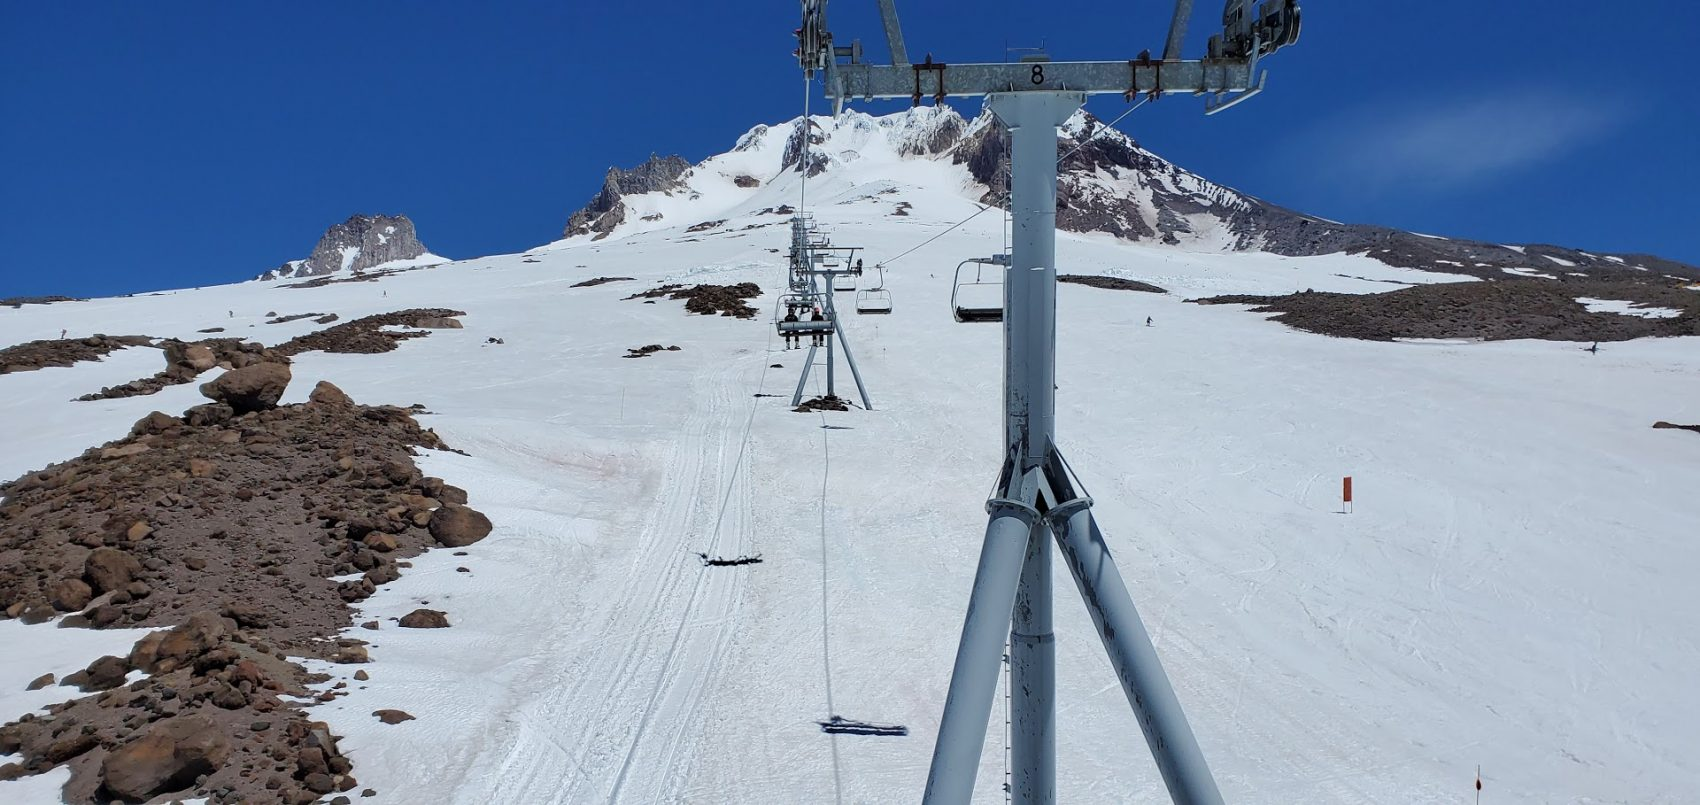 Palmer Chairlift